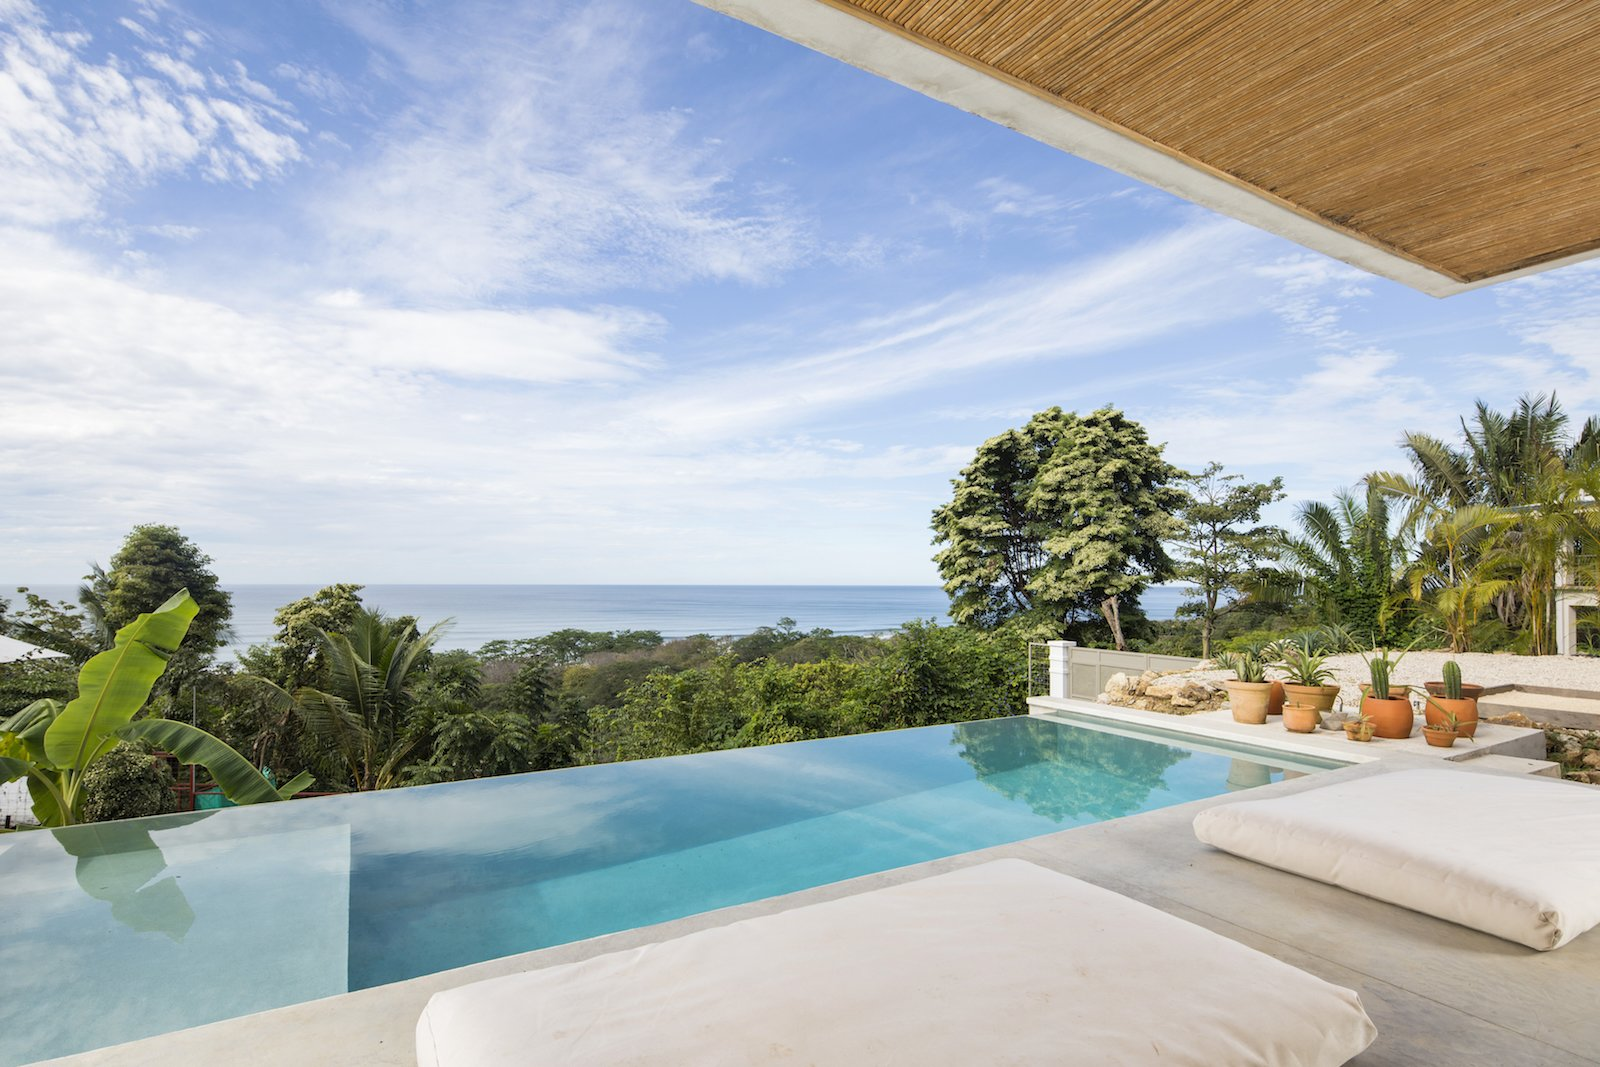 Outdoor, Infinity Pools, Tubs, Shower, and Concrete Patio, Porch, Deck The infinity pool mirrors the Pacific Ocean.  Photo 7 of 11 in Revive Your Mind at This Adults–Only Boutique Hotel in Costa Rica